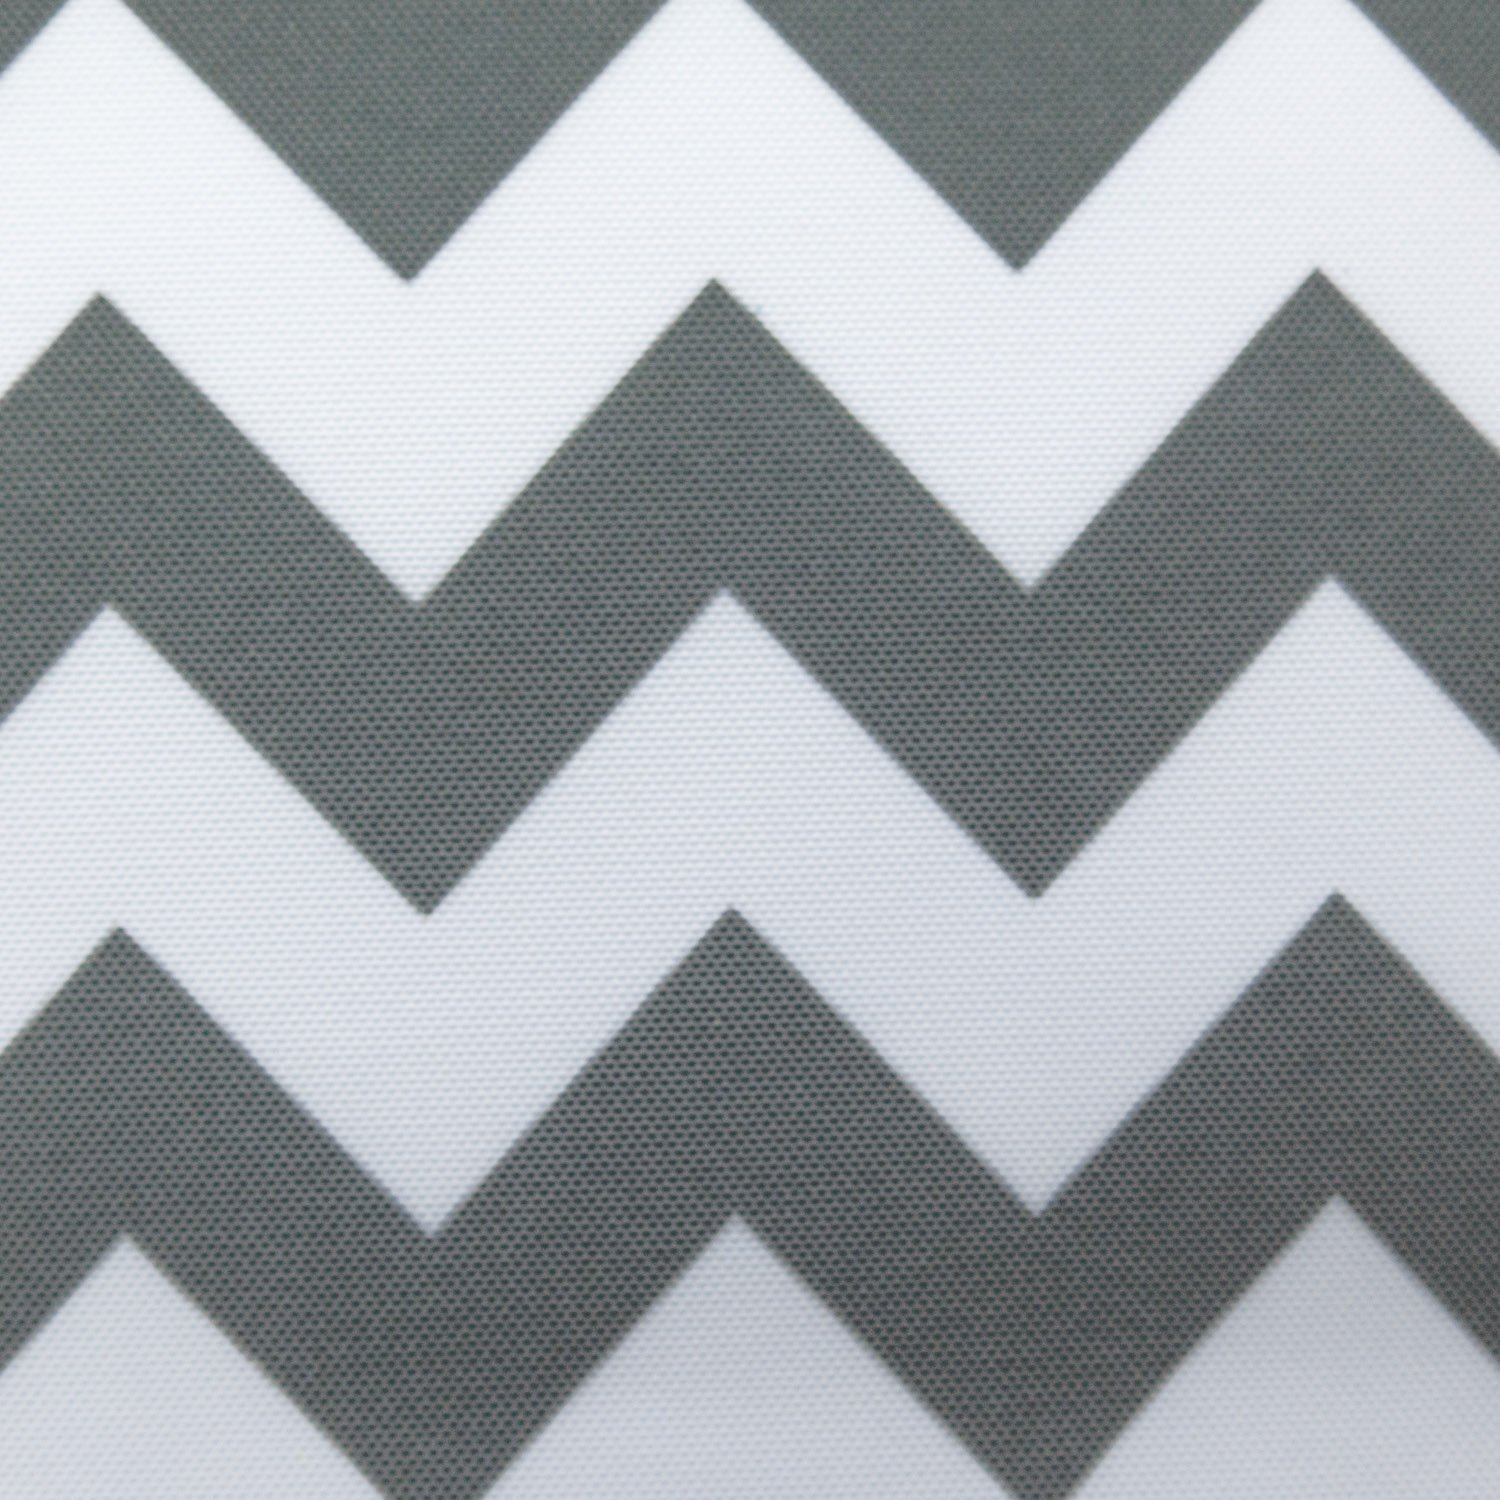 Waterproof Outdoor Chevron Canvas Grey/White 60 inch Fabric by The Yard (F.E.)